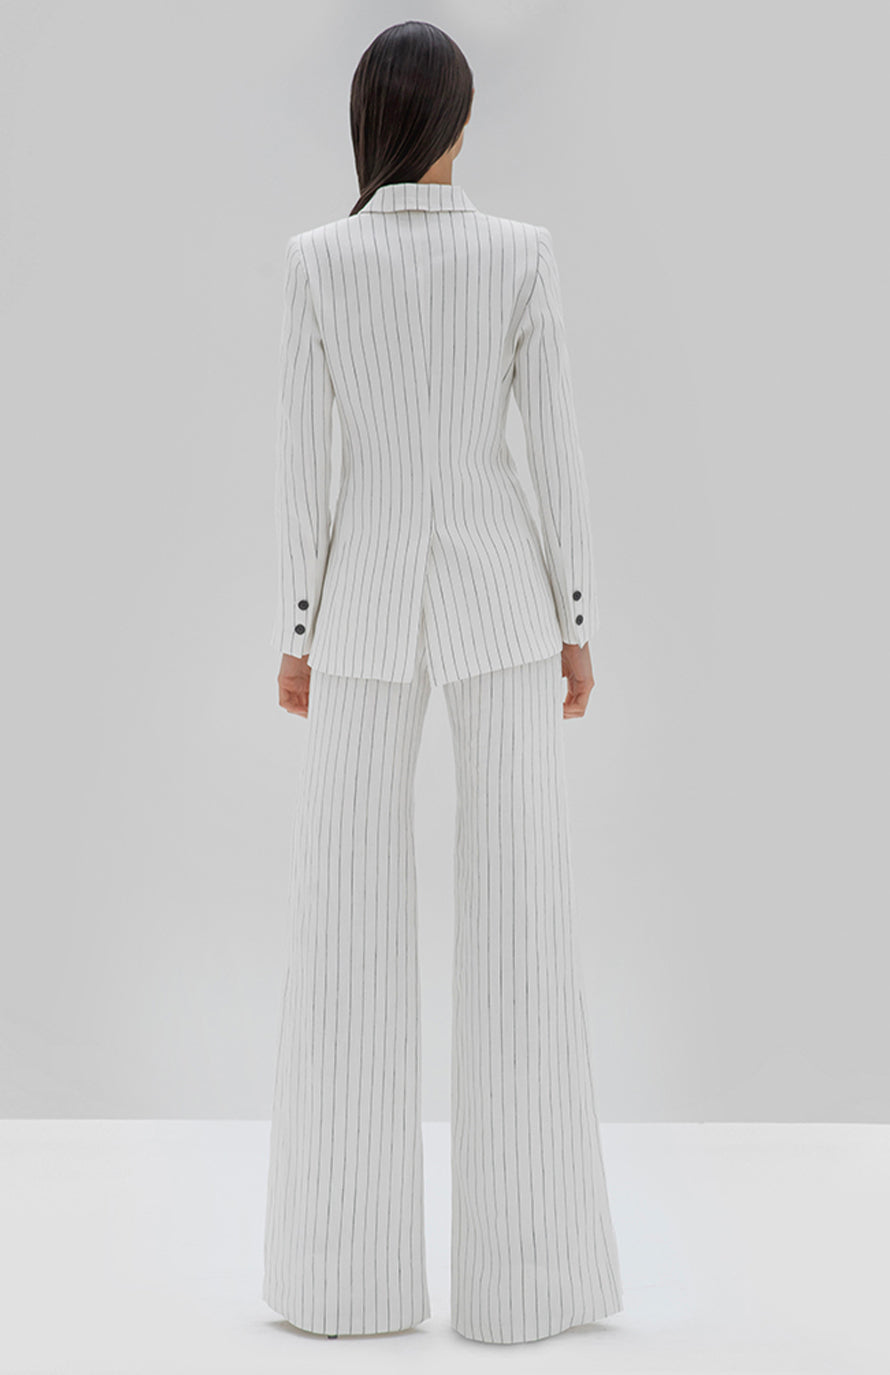 Alexis Wrenna Blazer white pinstripe - Rear View